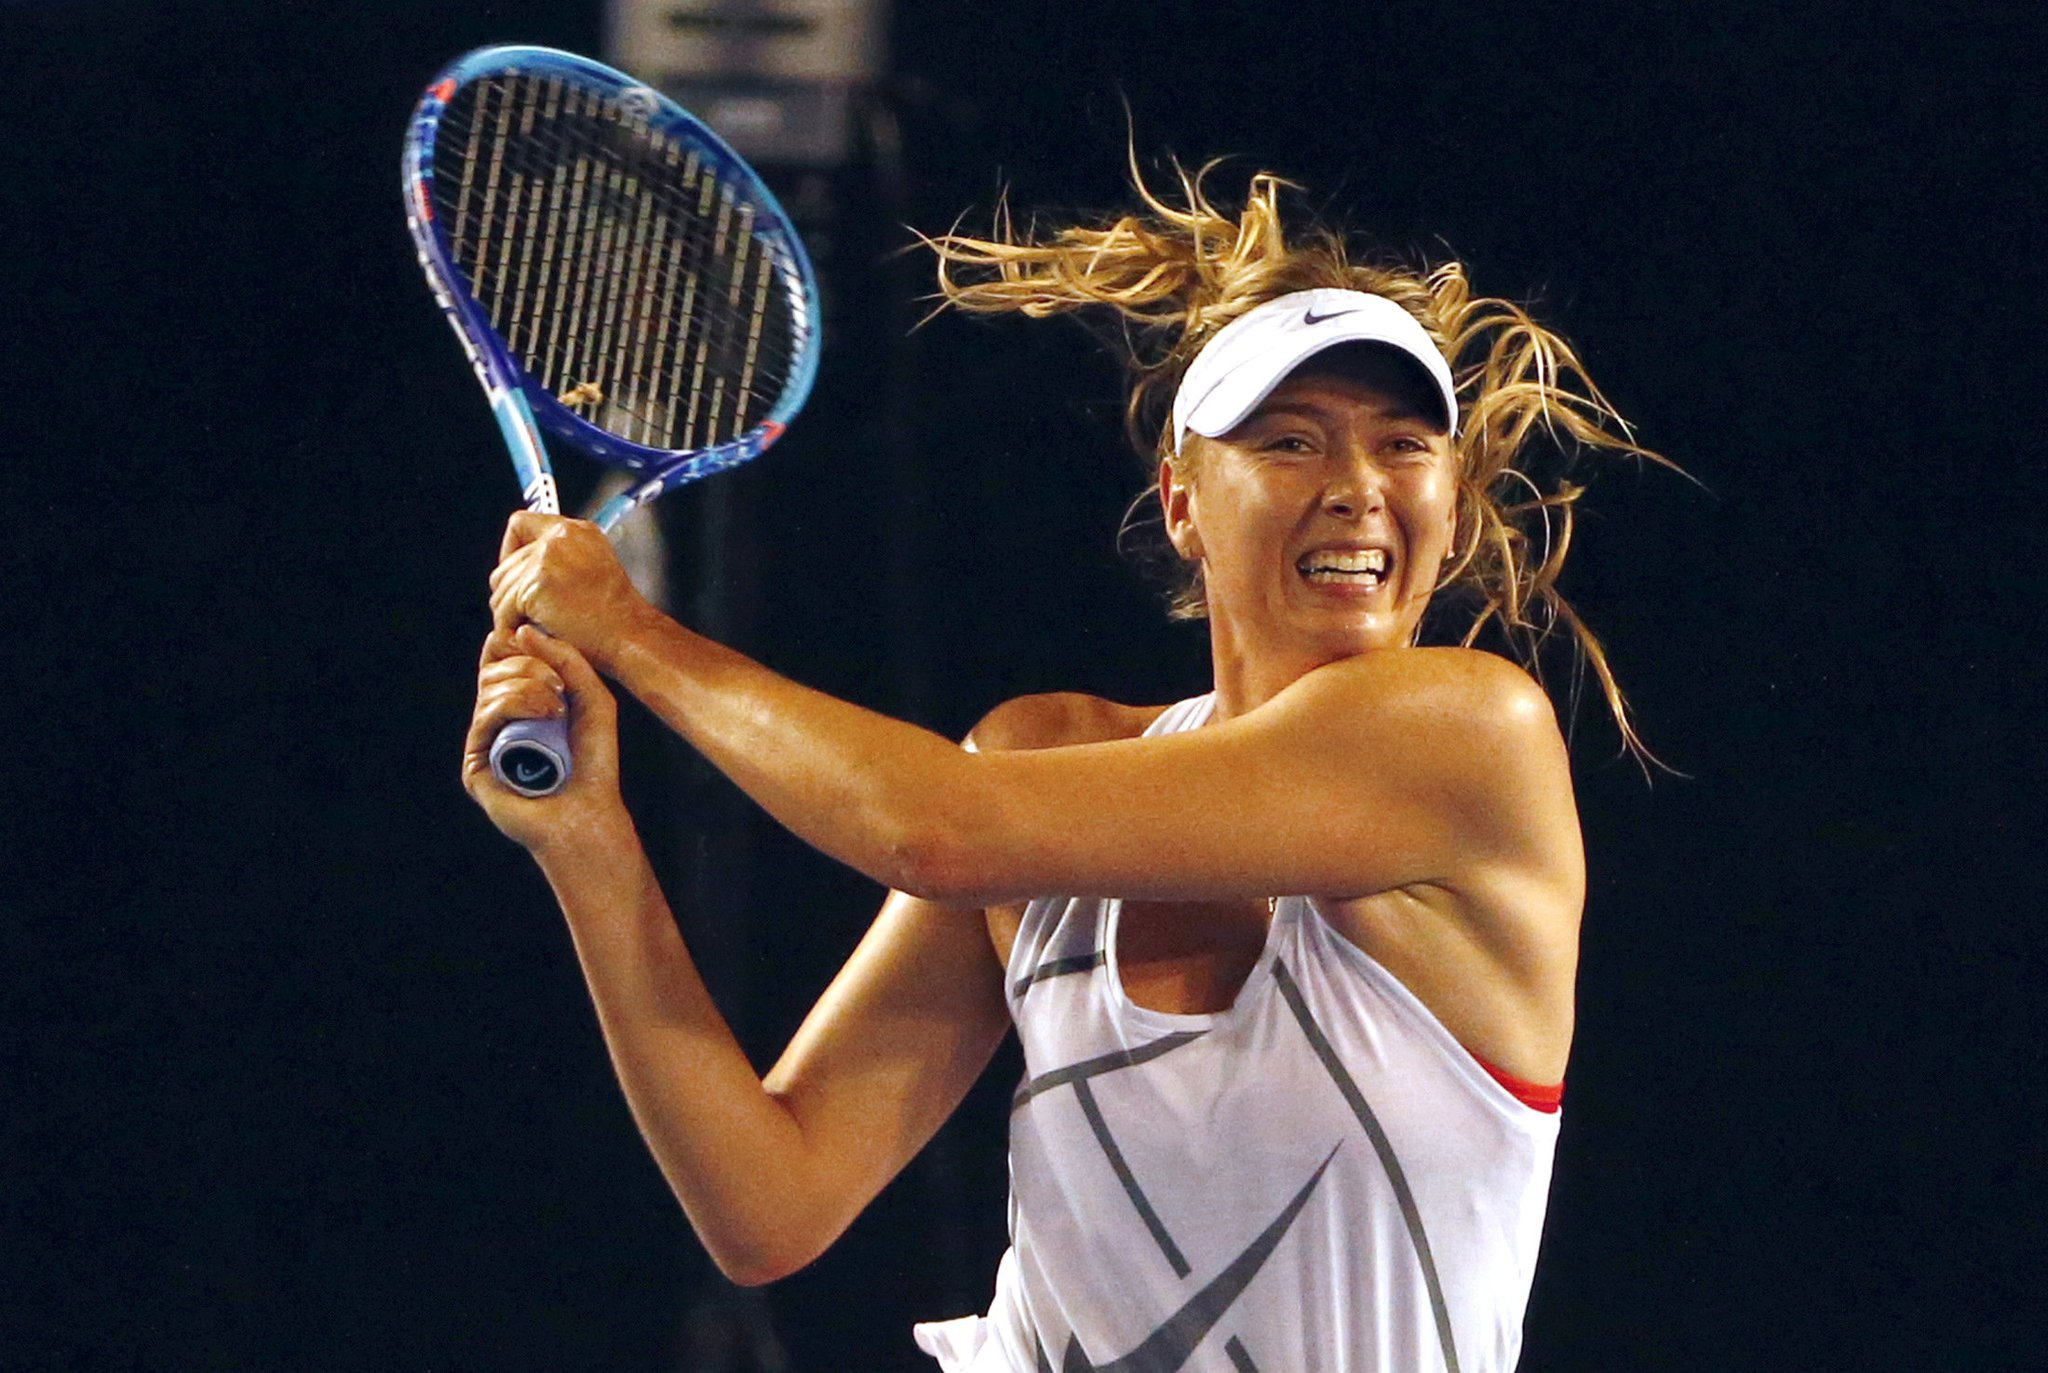 Sharapova Banned For Two Years For Doping, Vows To Appeal